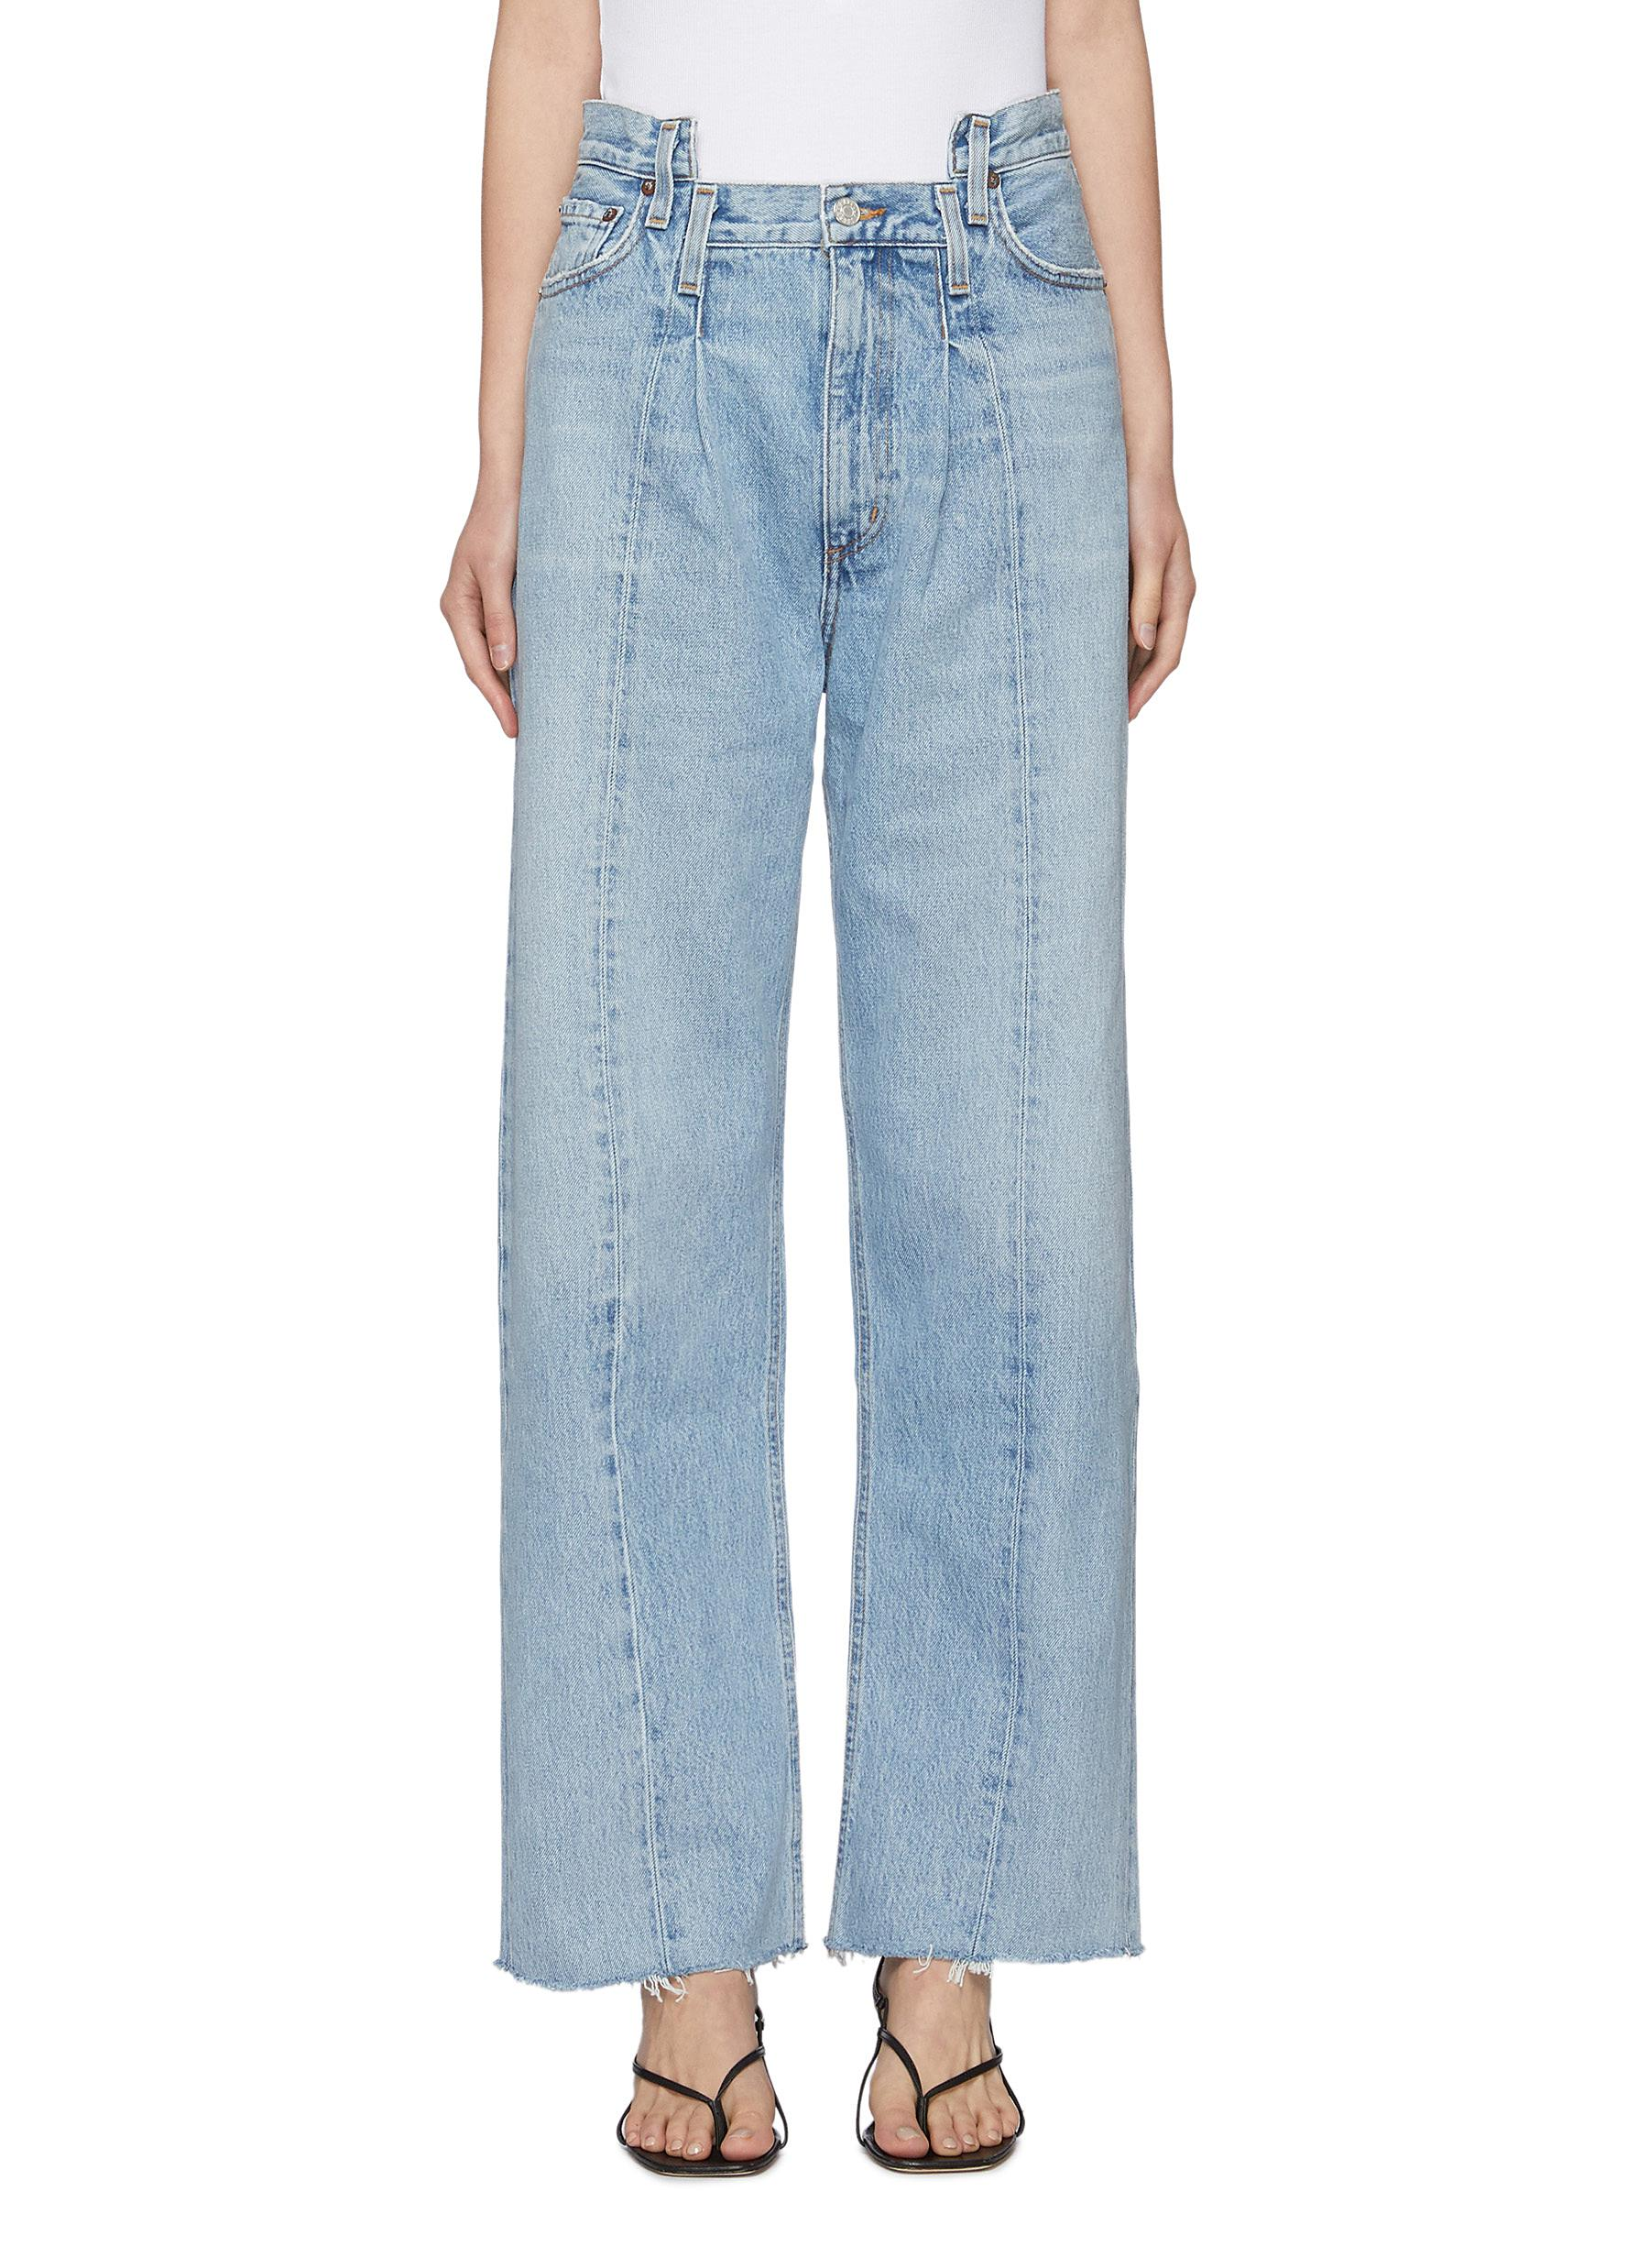 Displaced Waistband Wide Leg Jeans